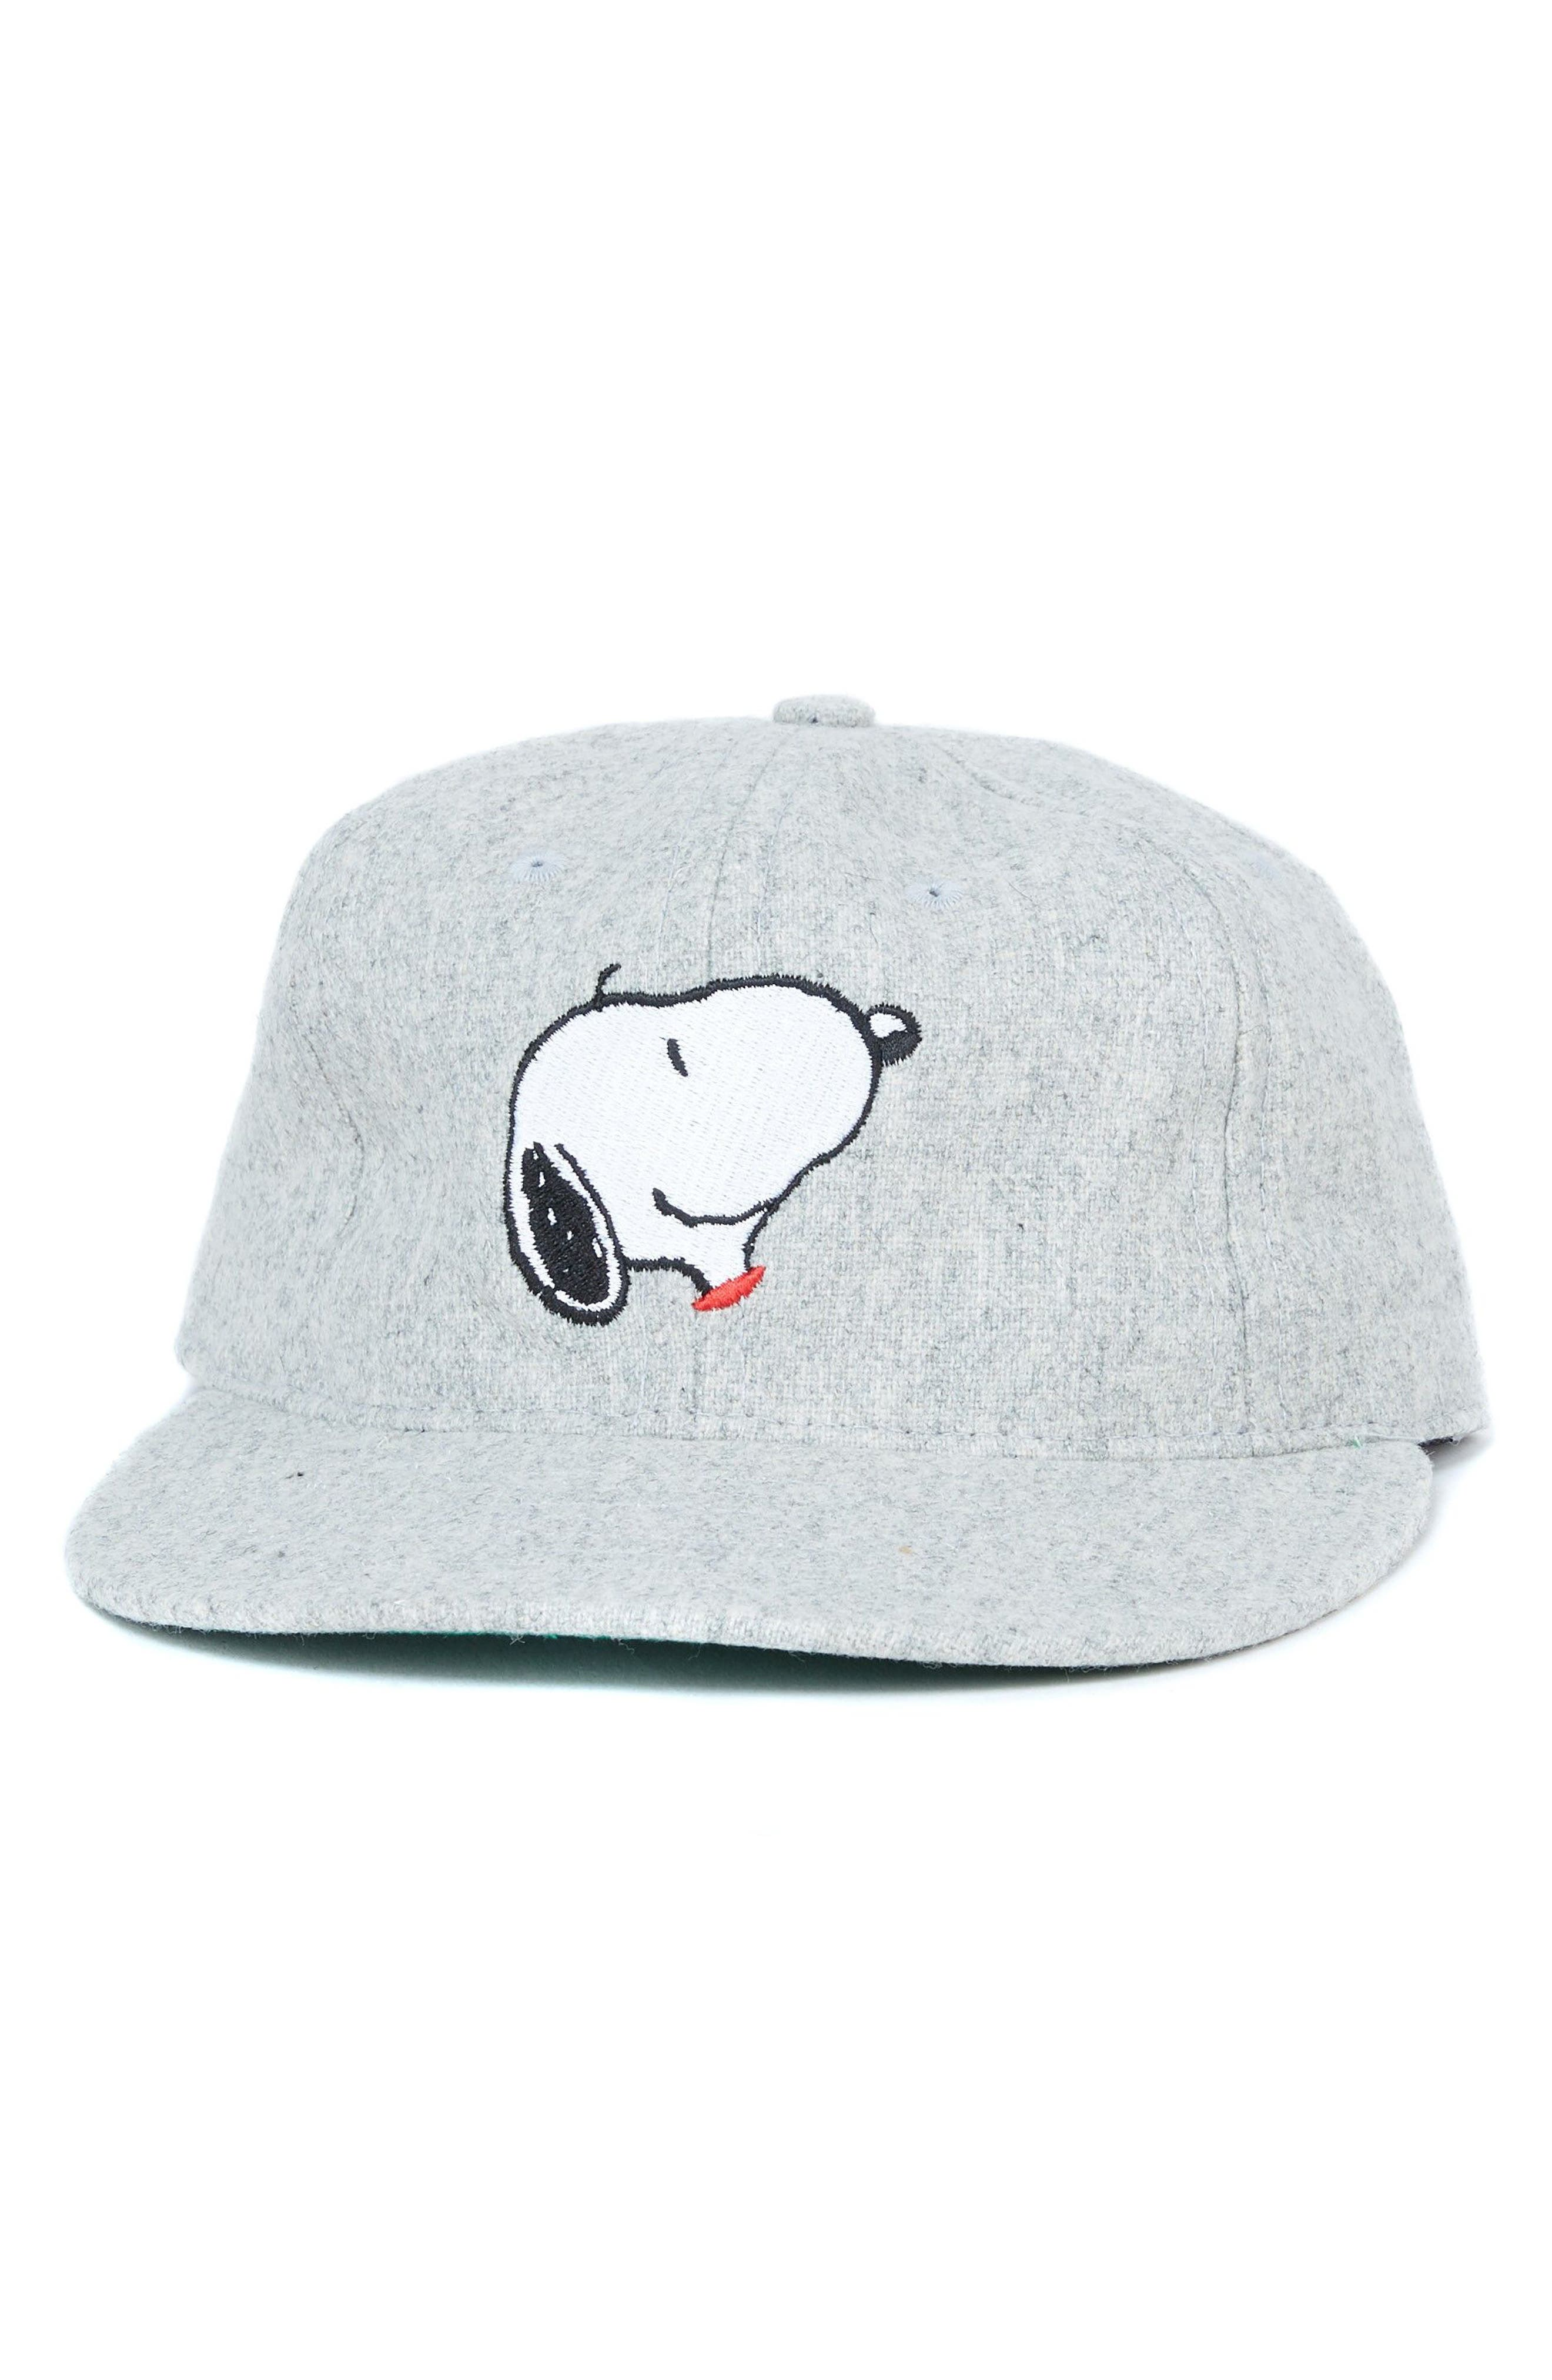 Ebbets Field Flannels Peanuts Baseball Cap (Limited Edition) (Nordstrom Exclusive)